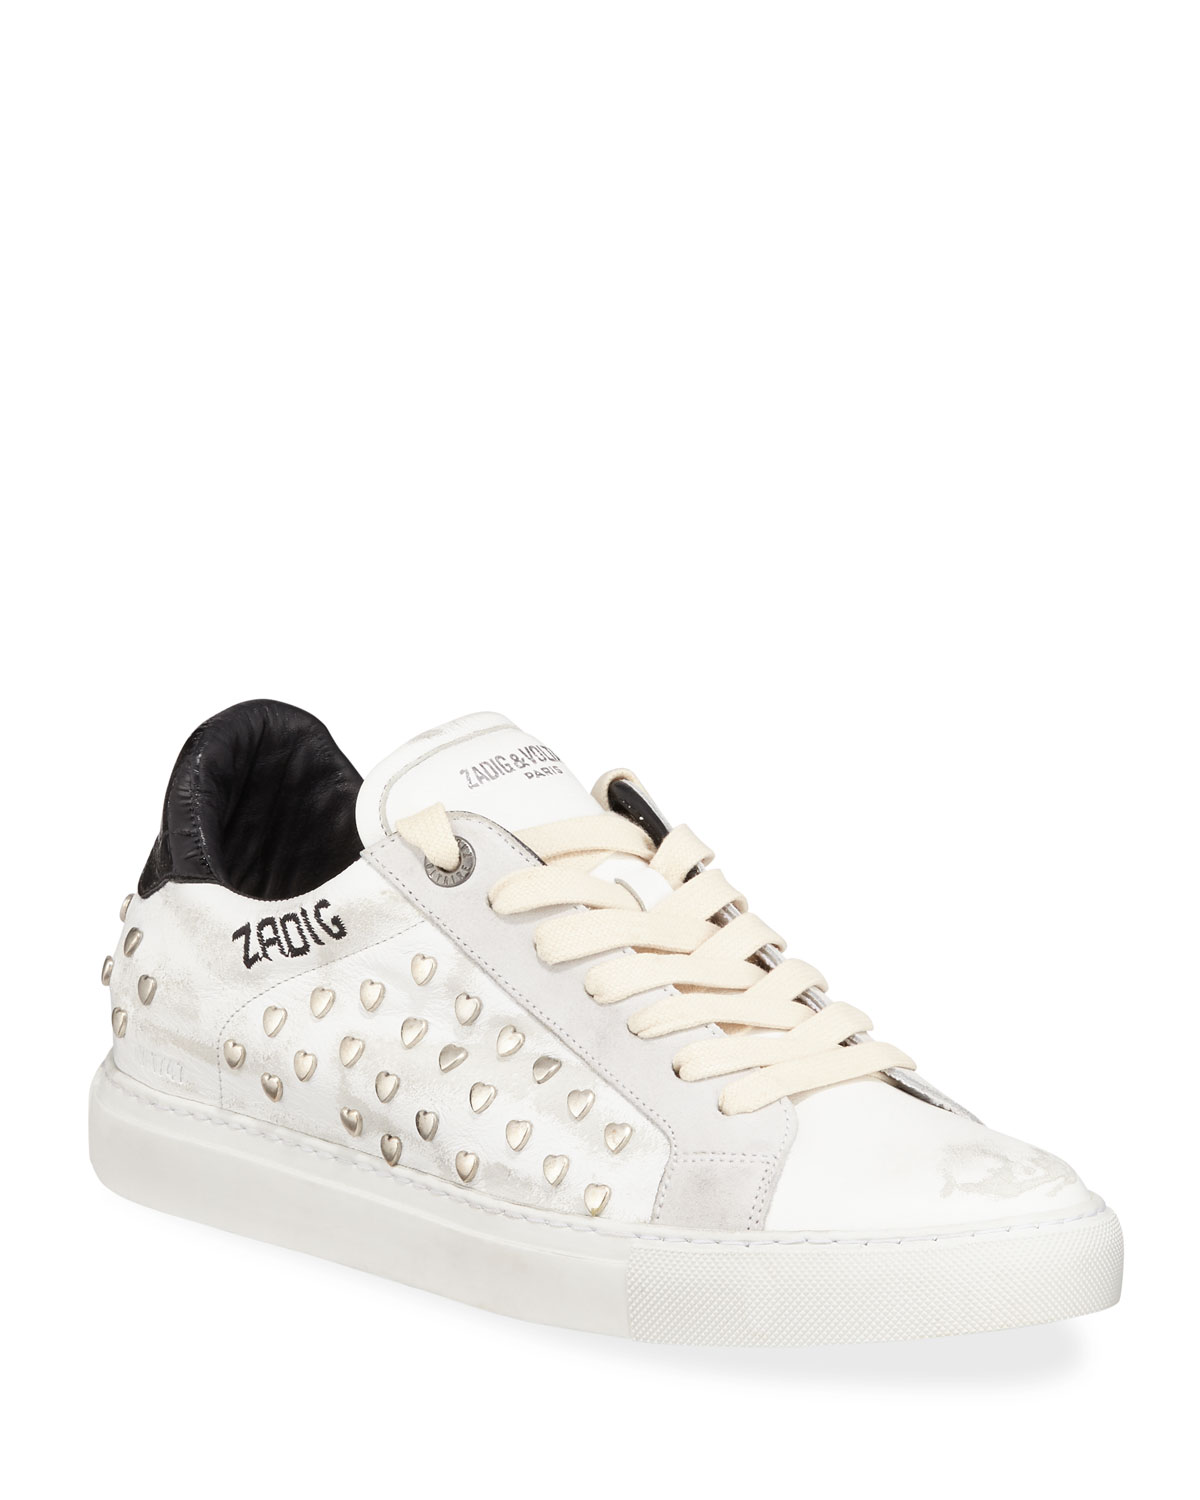 ZV1747 Distressed Heart-Studded Leather Sneaker